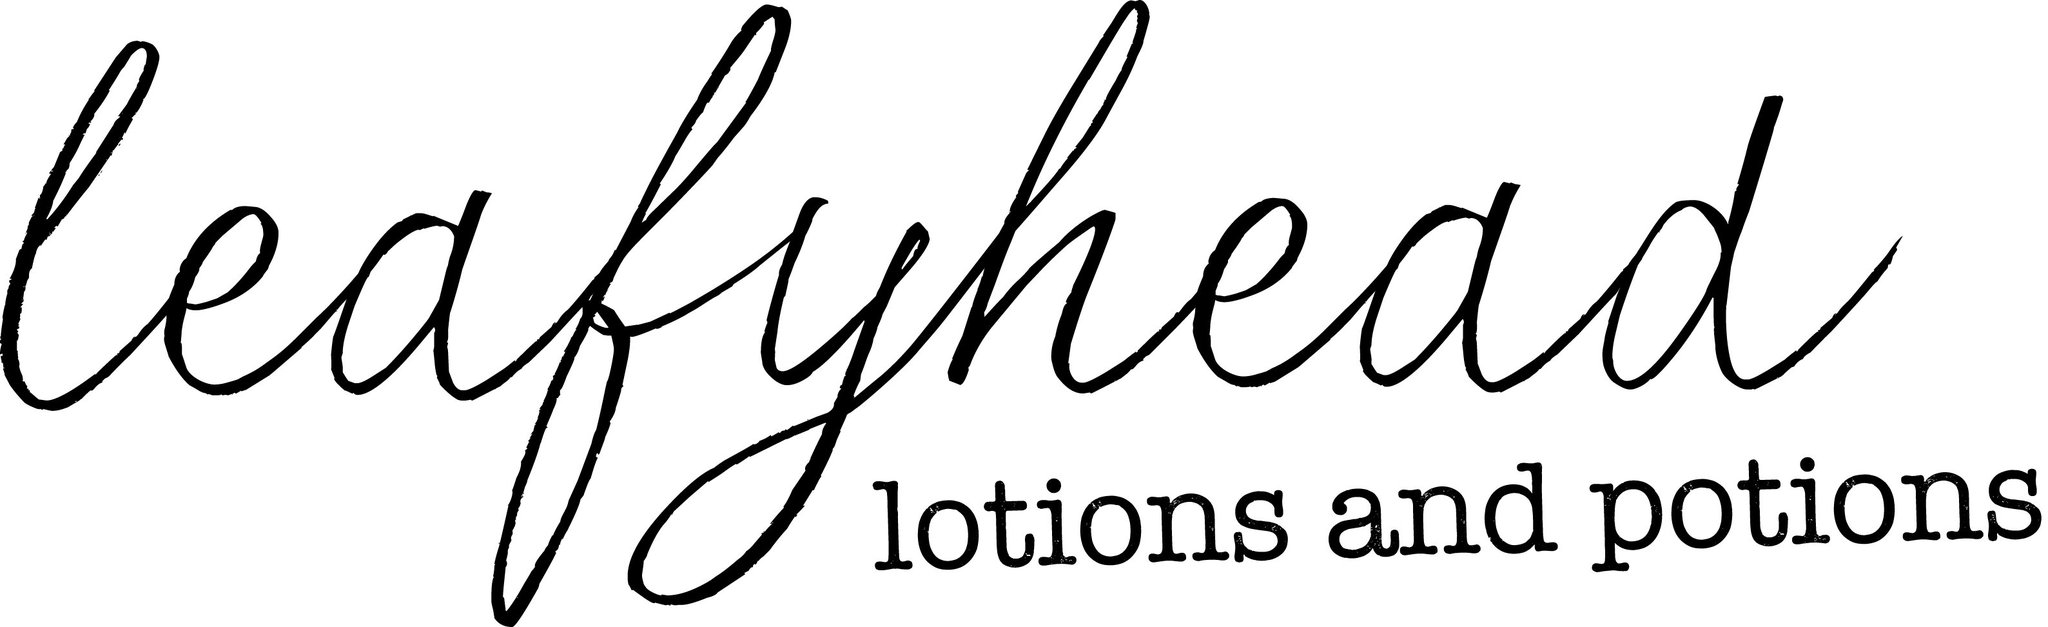 logo for Leafyhead Lotions & Potions